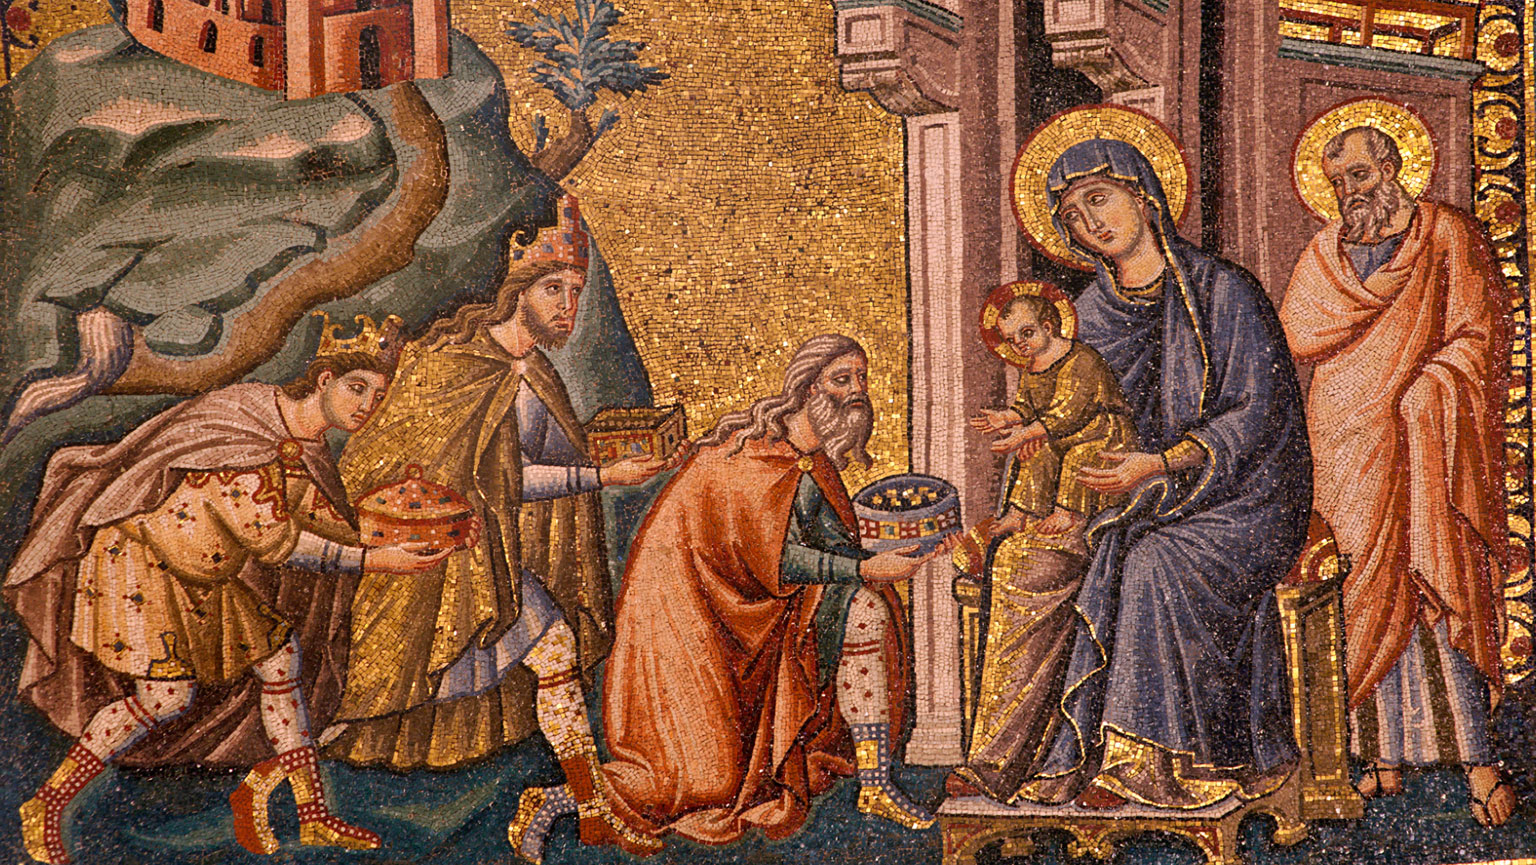 the early life of jesus the great courses plus